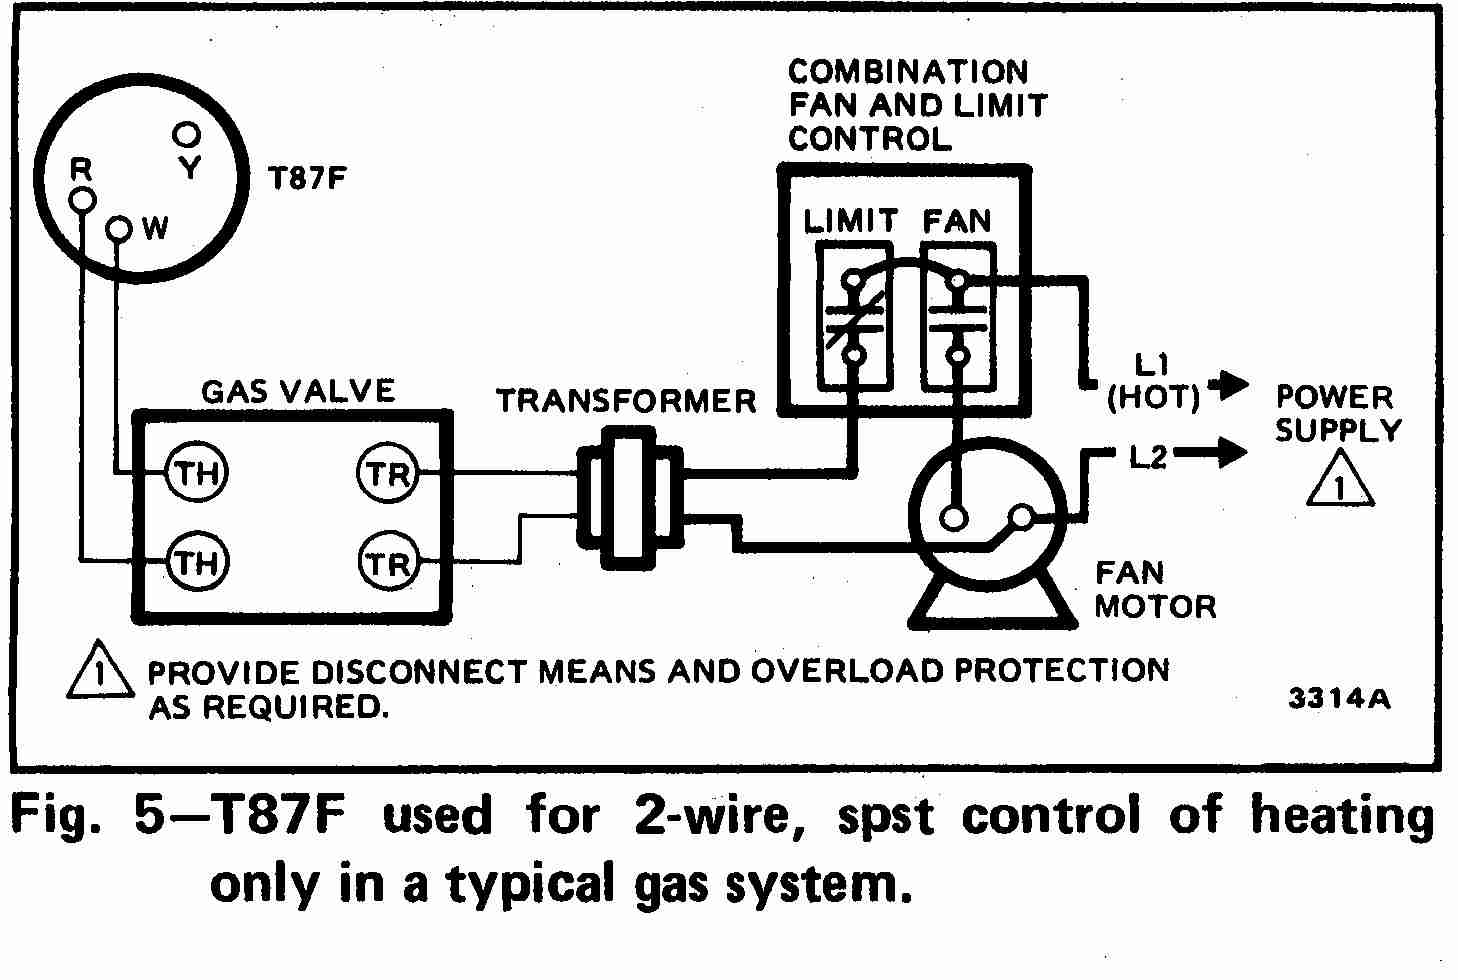 TT_T87F_0002_2Wg_DJF zone valve wiring installation & instructions guide to heating honeywell zone control wiring diagram at crackthecode.co